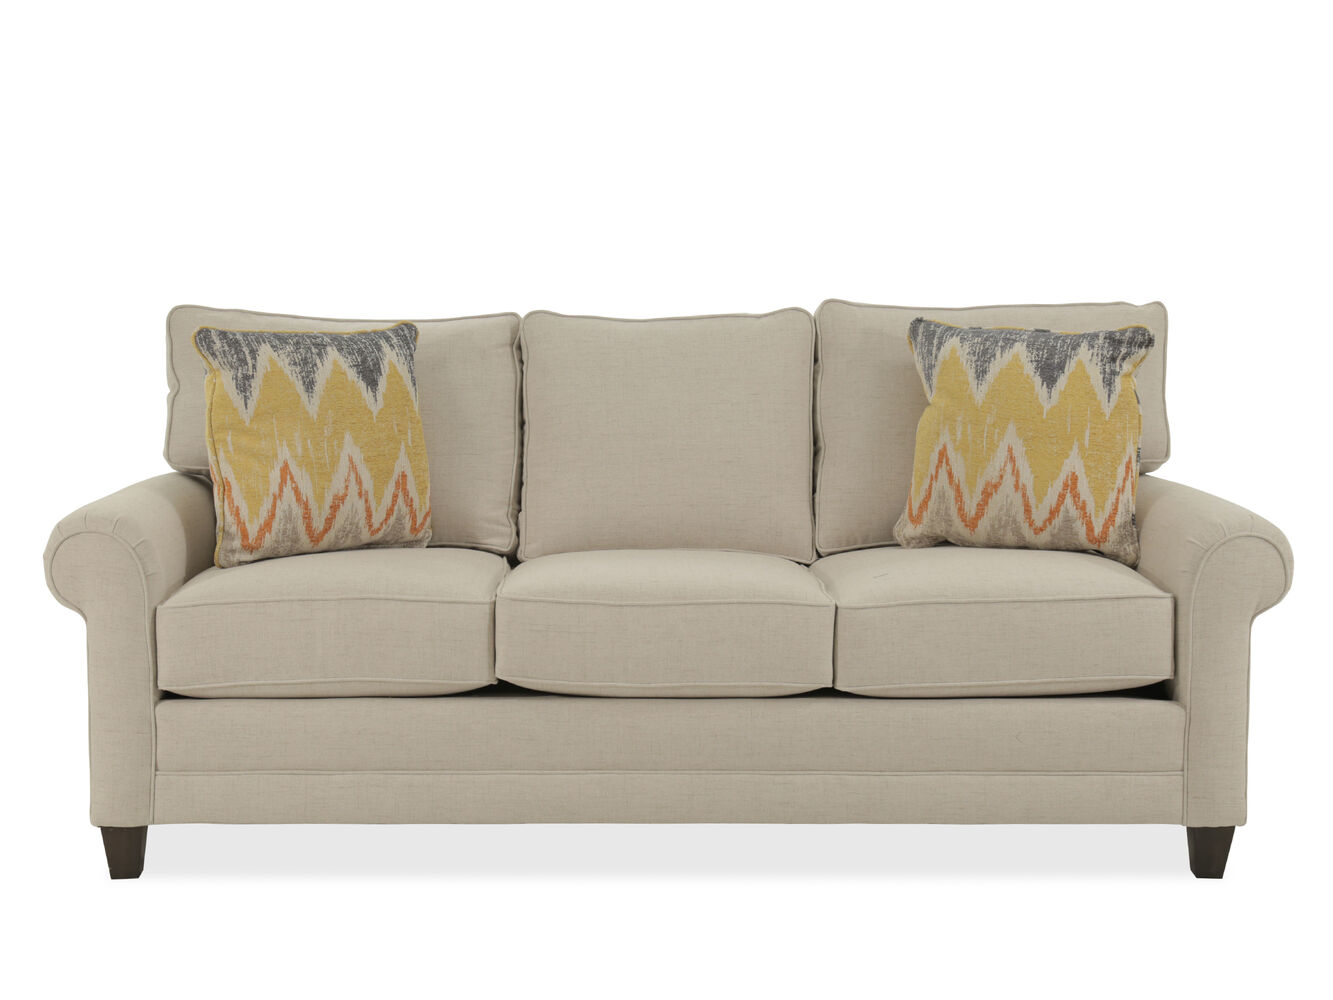 Rolled arm casual 85 sofa in beige mathis brothers for Sofa 80 tief